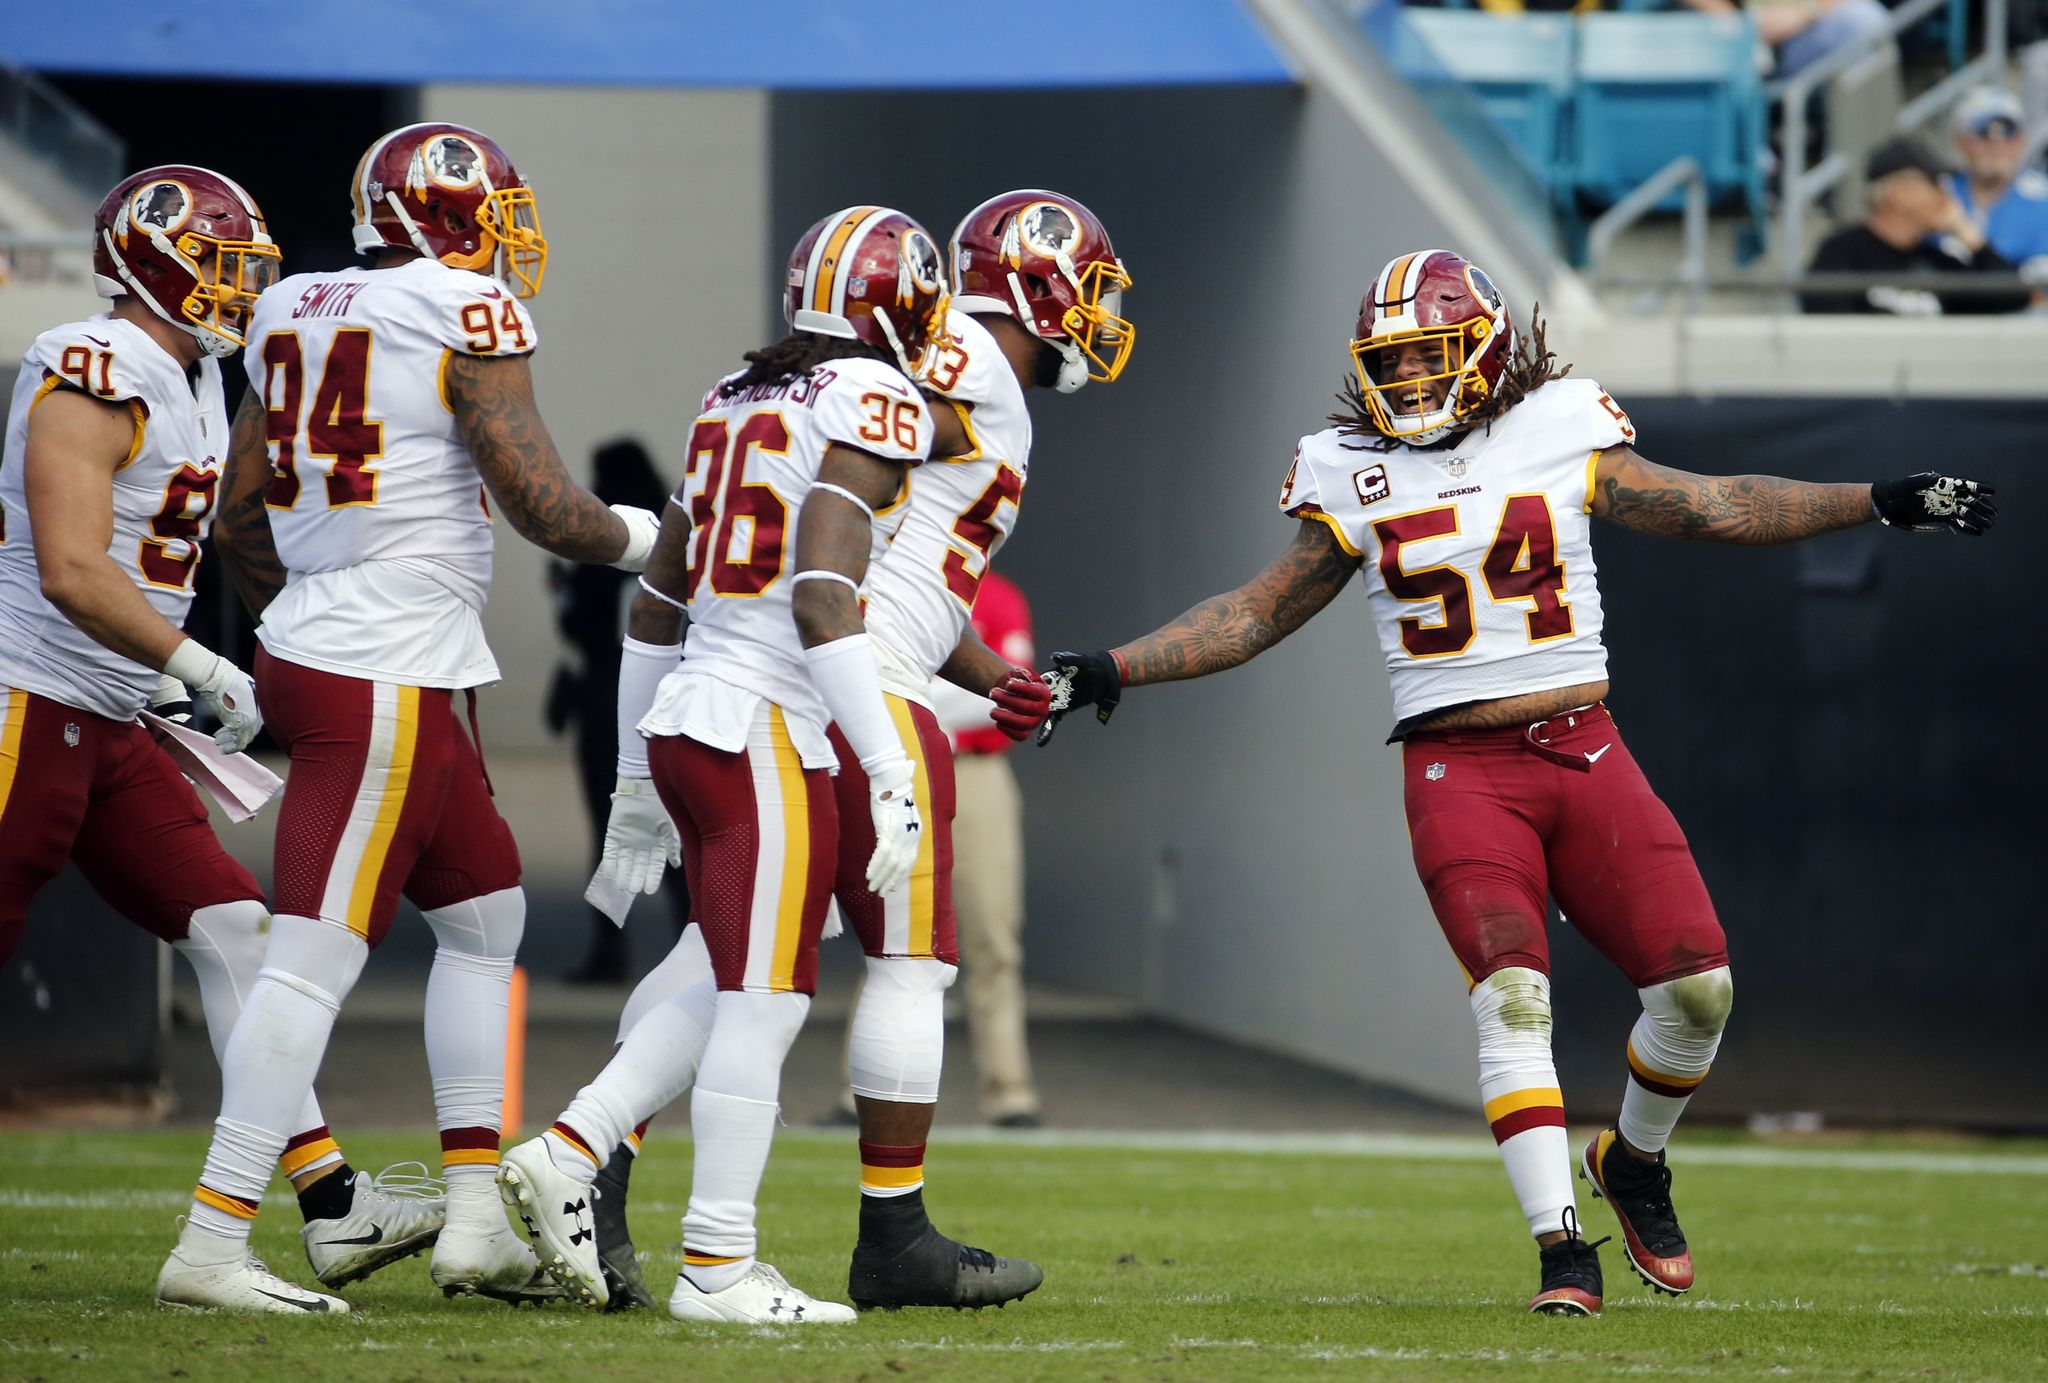 Redskins_jaguars_football_20777.jpg-fa2bd_s2048x1383